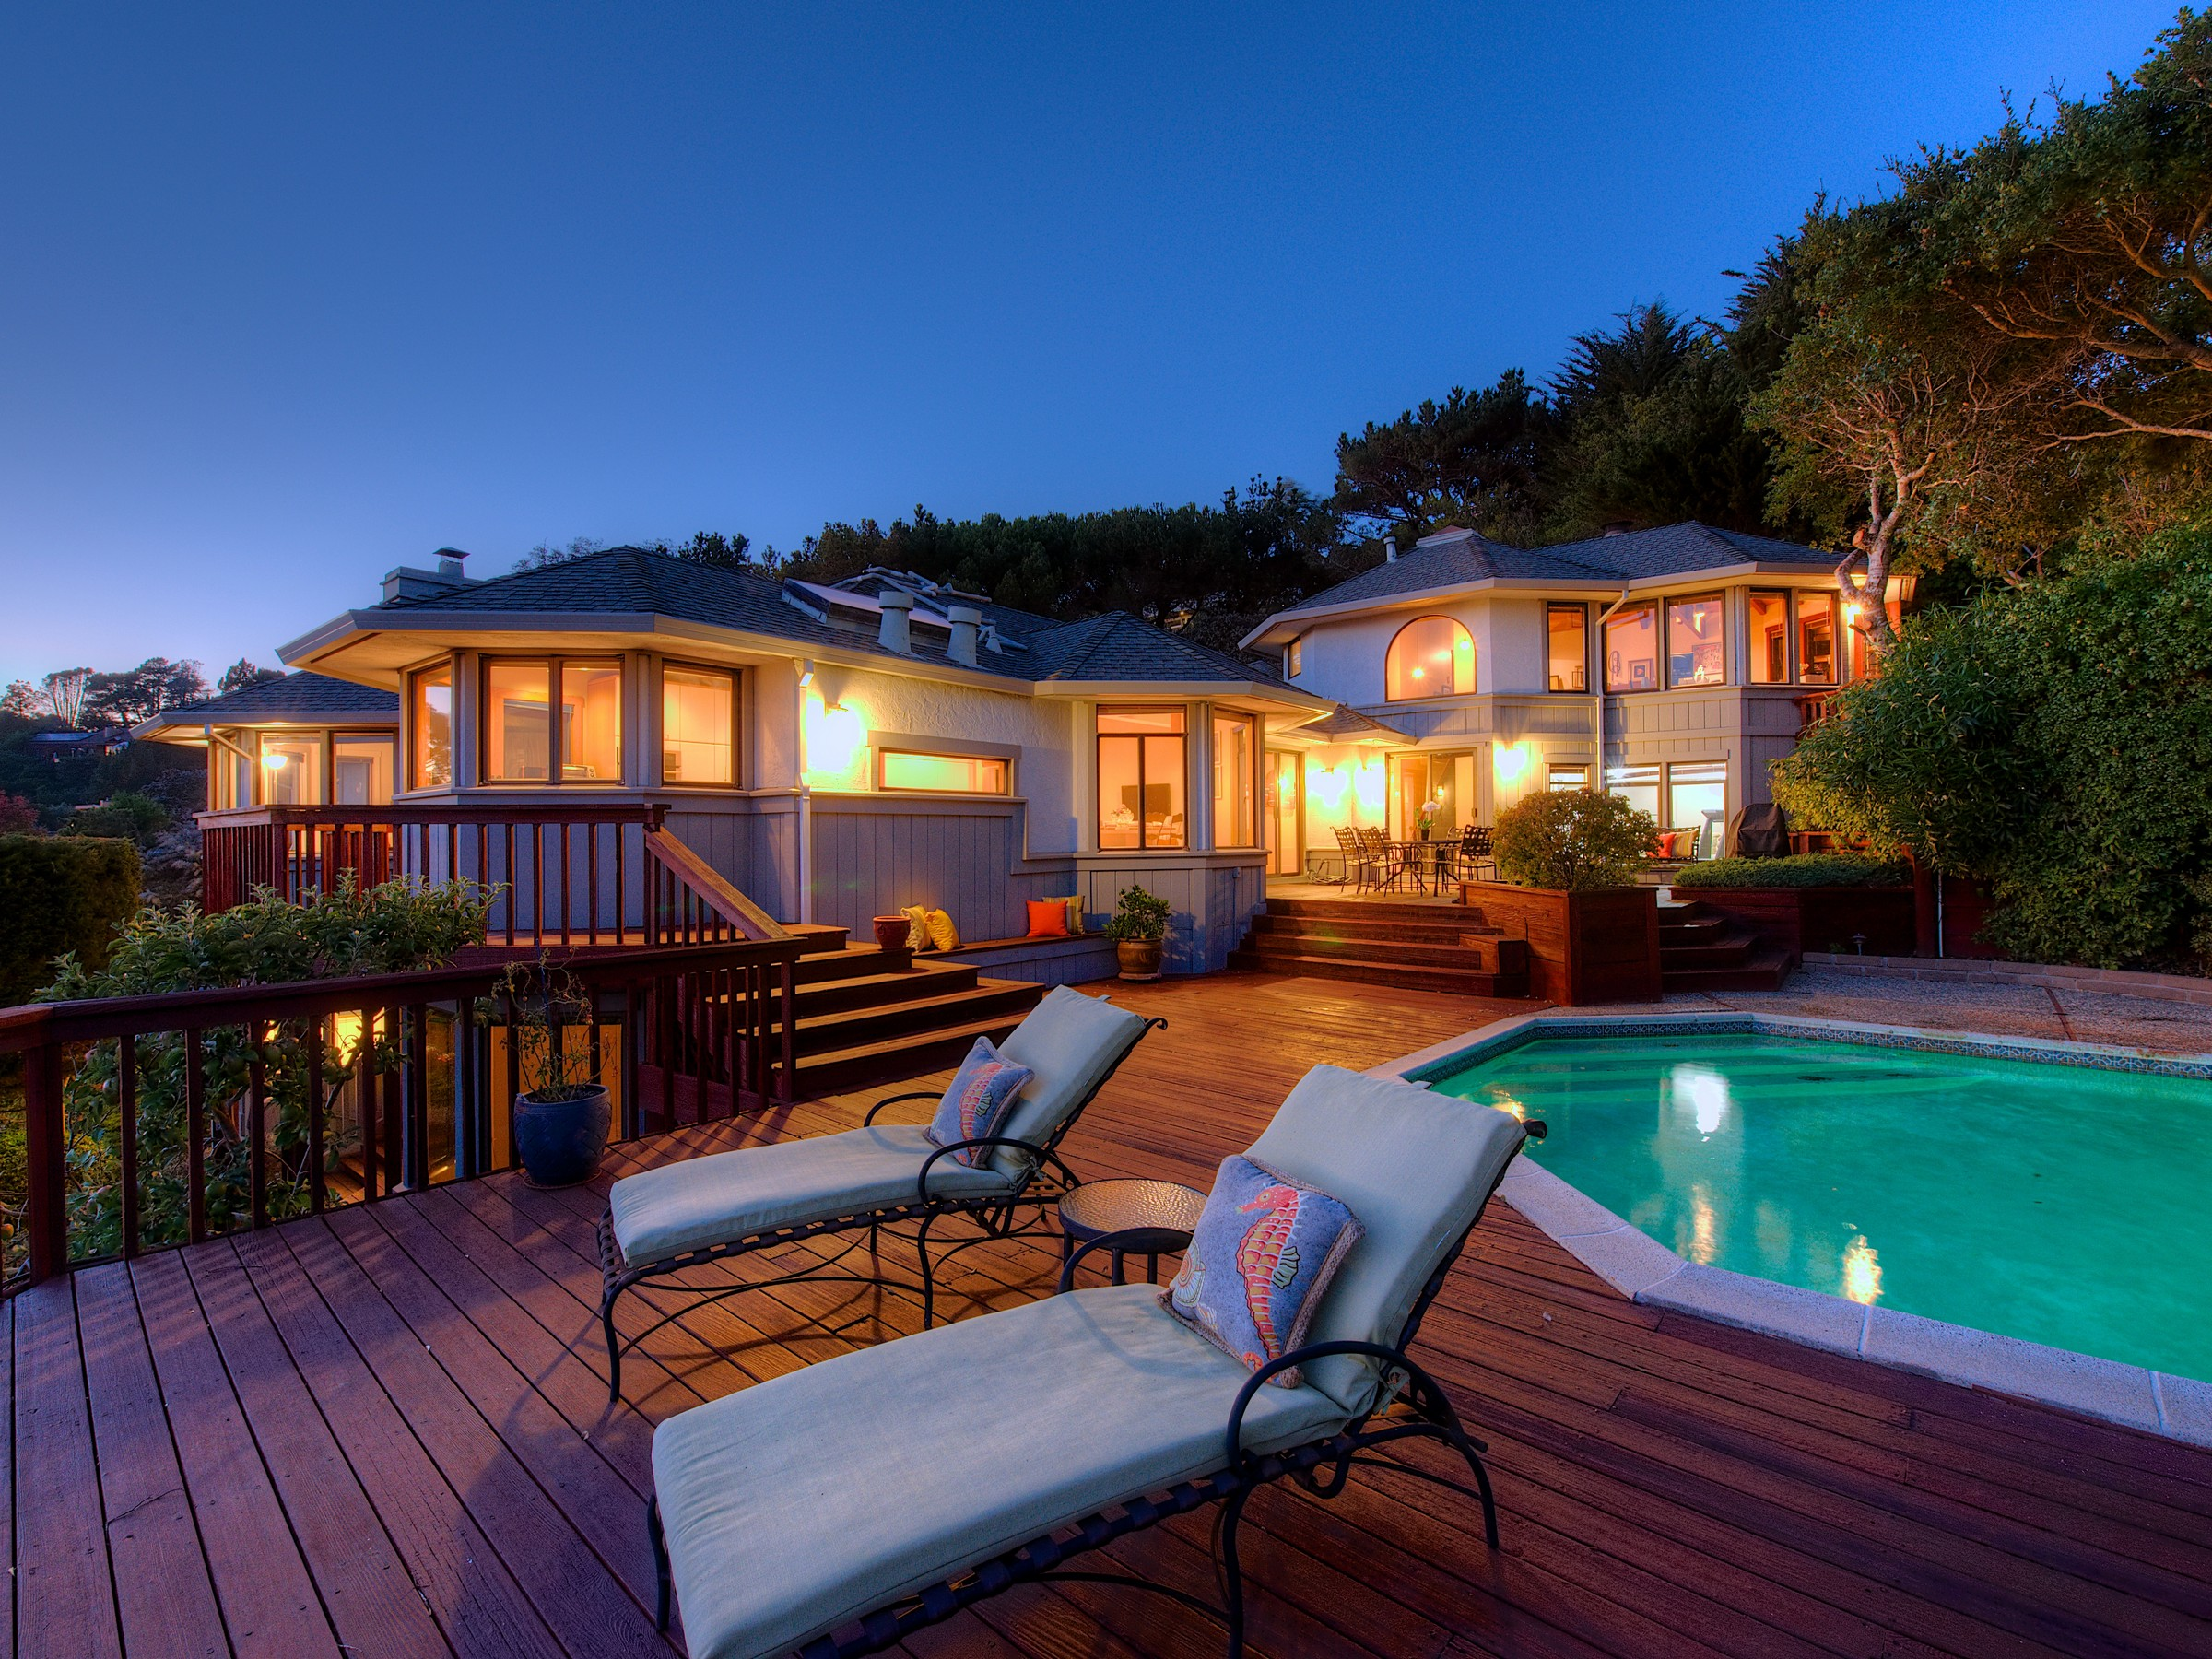 Single Family Home for Sale at Mesmerizing Views of San Francisco, GGB, Belvedere Lagoon & Richardson Bay! 31 Meadow Hill Drive Tiburon, California 94920 United States